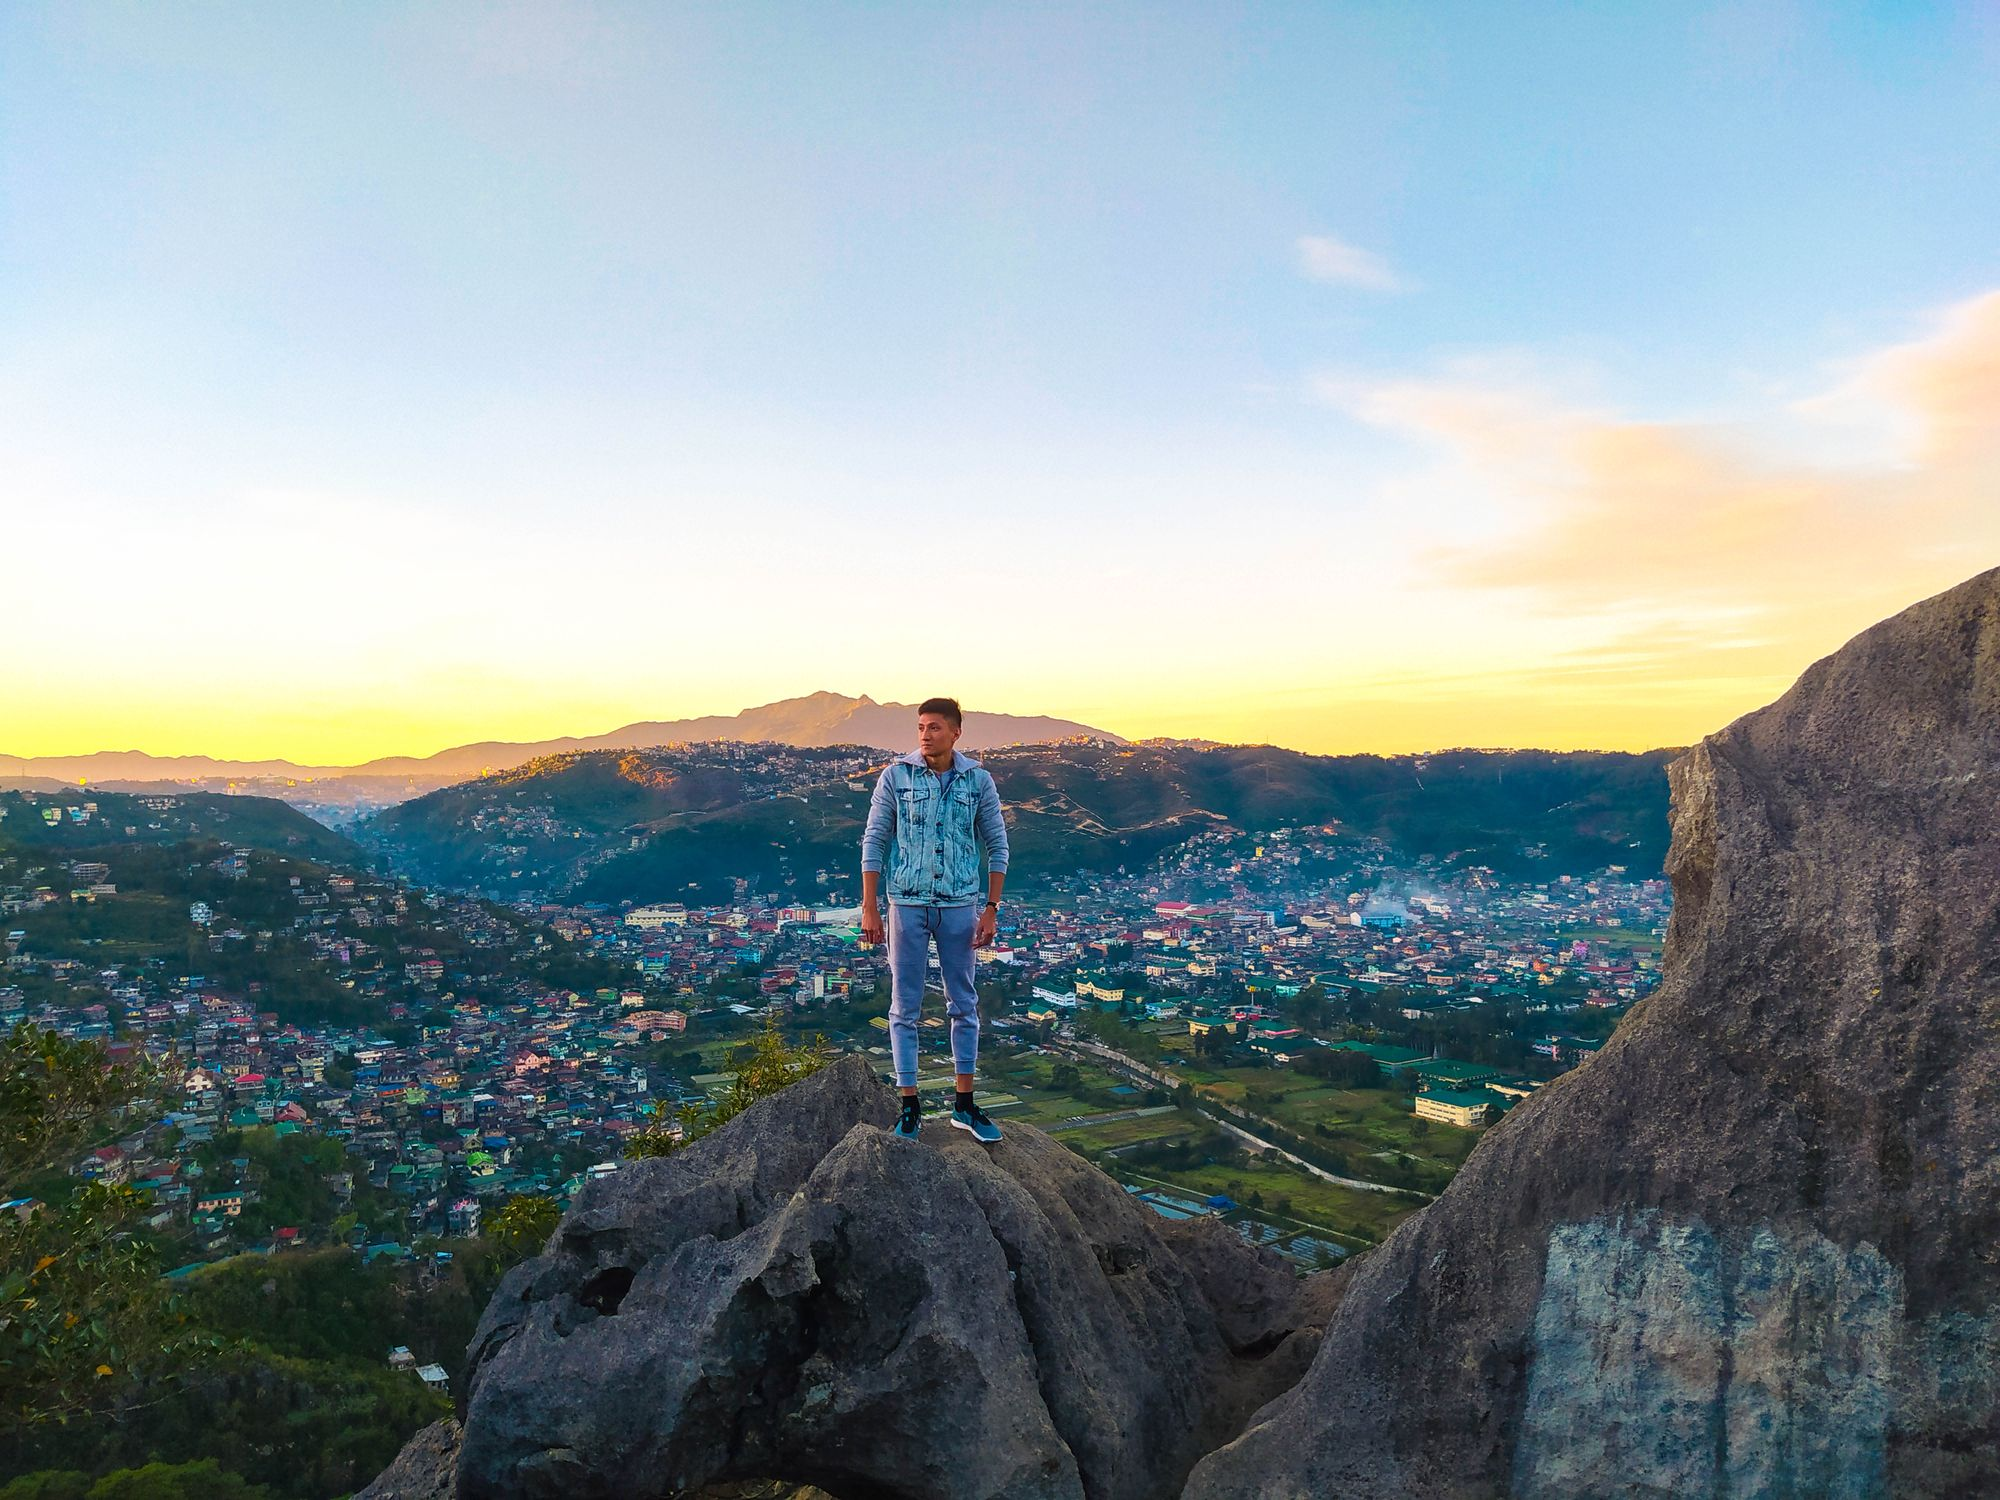 A man standing on a rock overlooking a valley town surrounded by hills and mountains beneath a morning sky